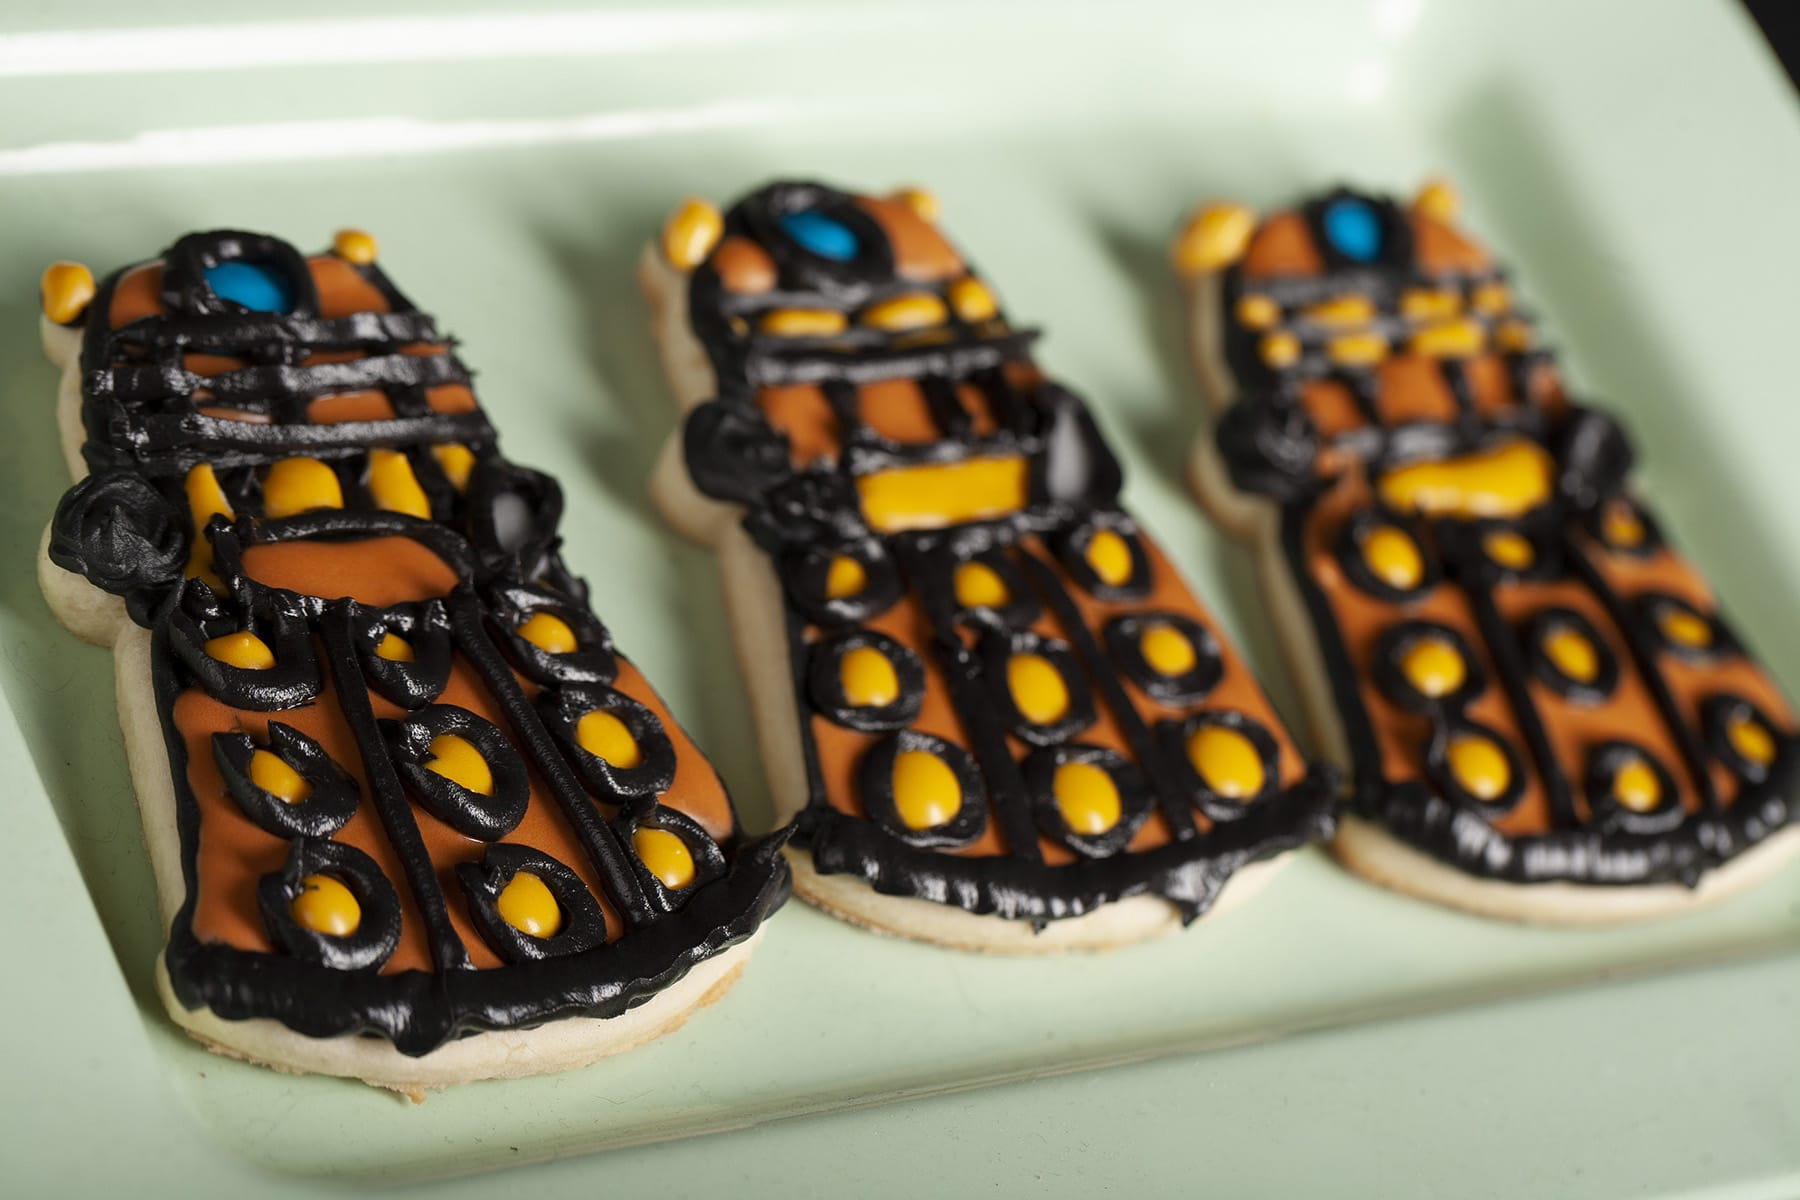 3 decorated Dalek sugar cookies on a light green plate.